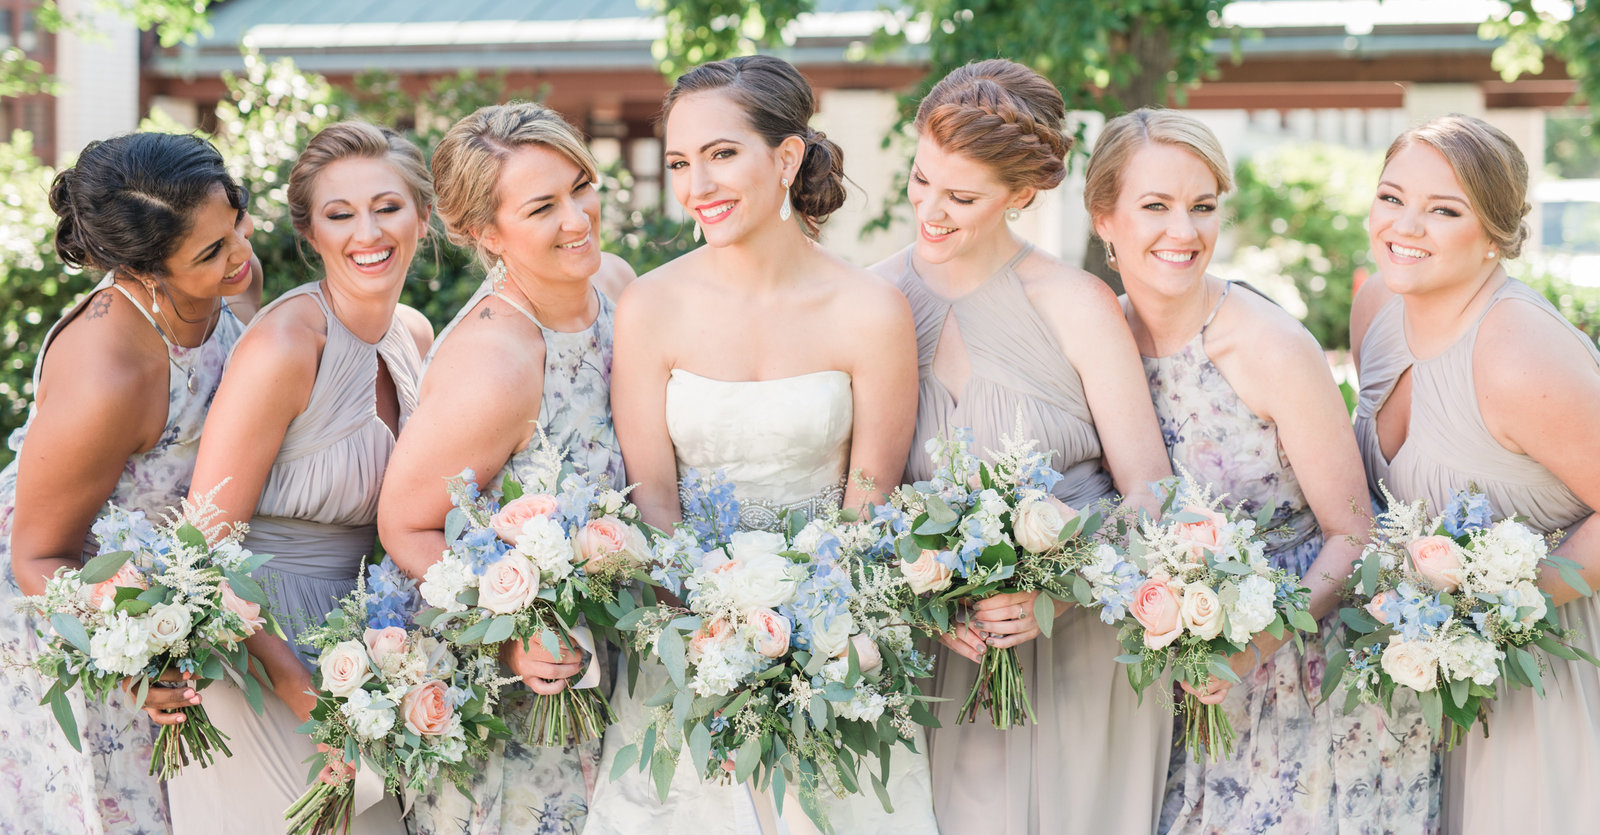 floral pastel bridesmaids dresses at virginia beach moca by norfolk wedding photographer